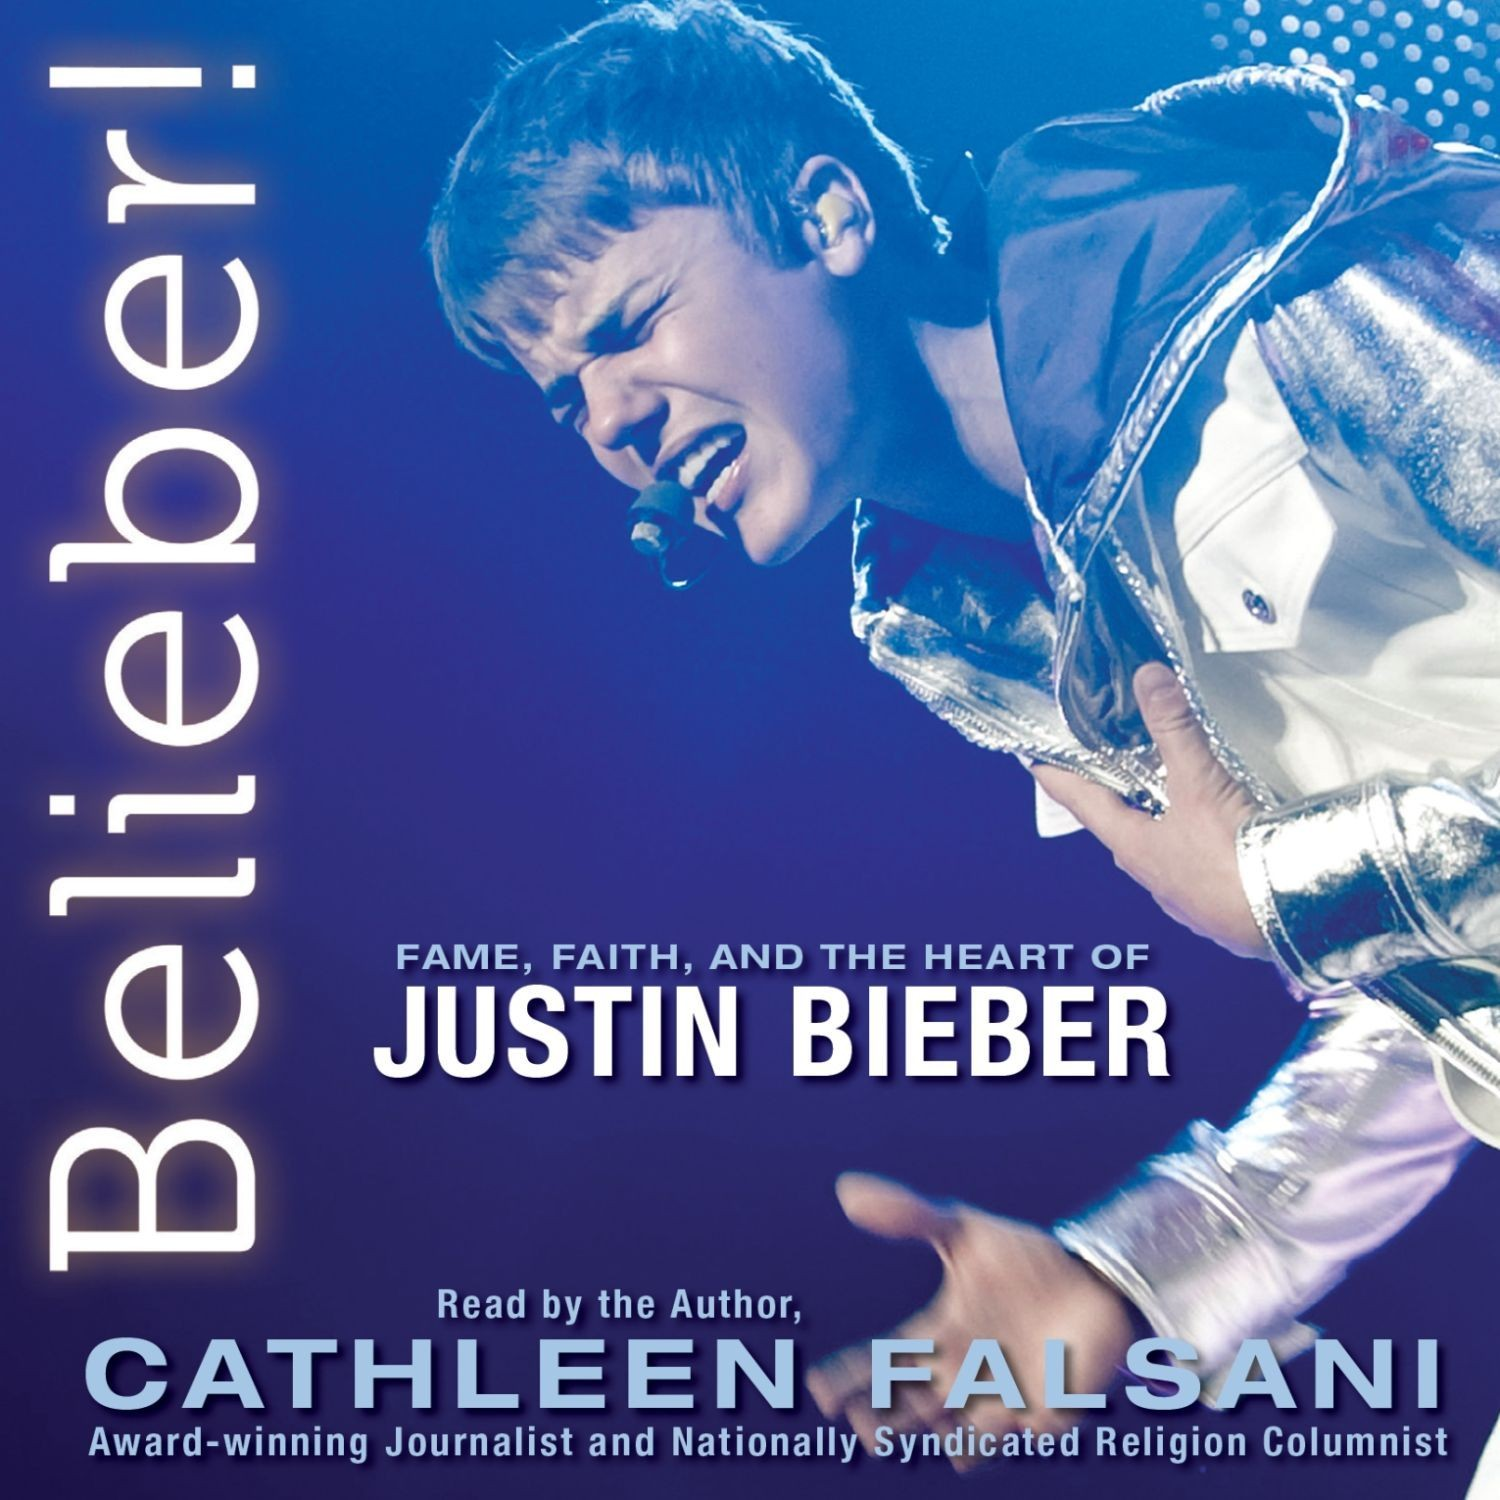 Belieber!: Fame, Faith, and the Heart of Justin Bieber Audiobook, by Cathleen Falsani